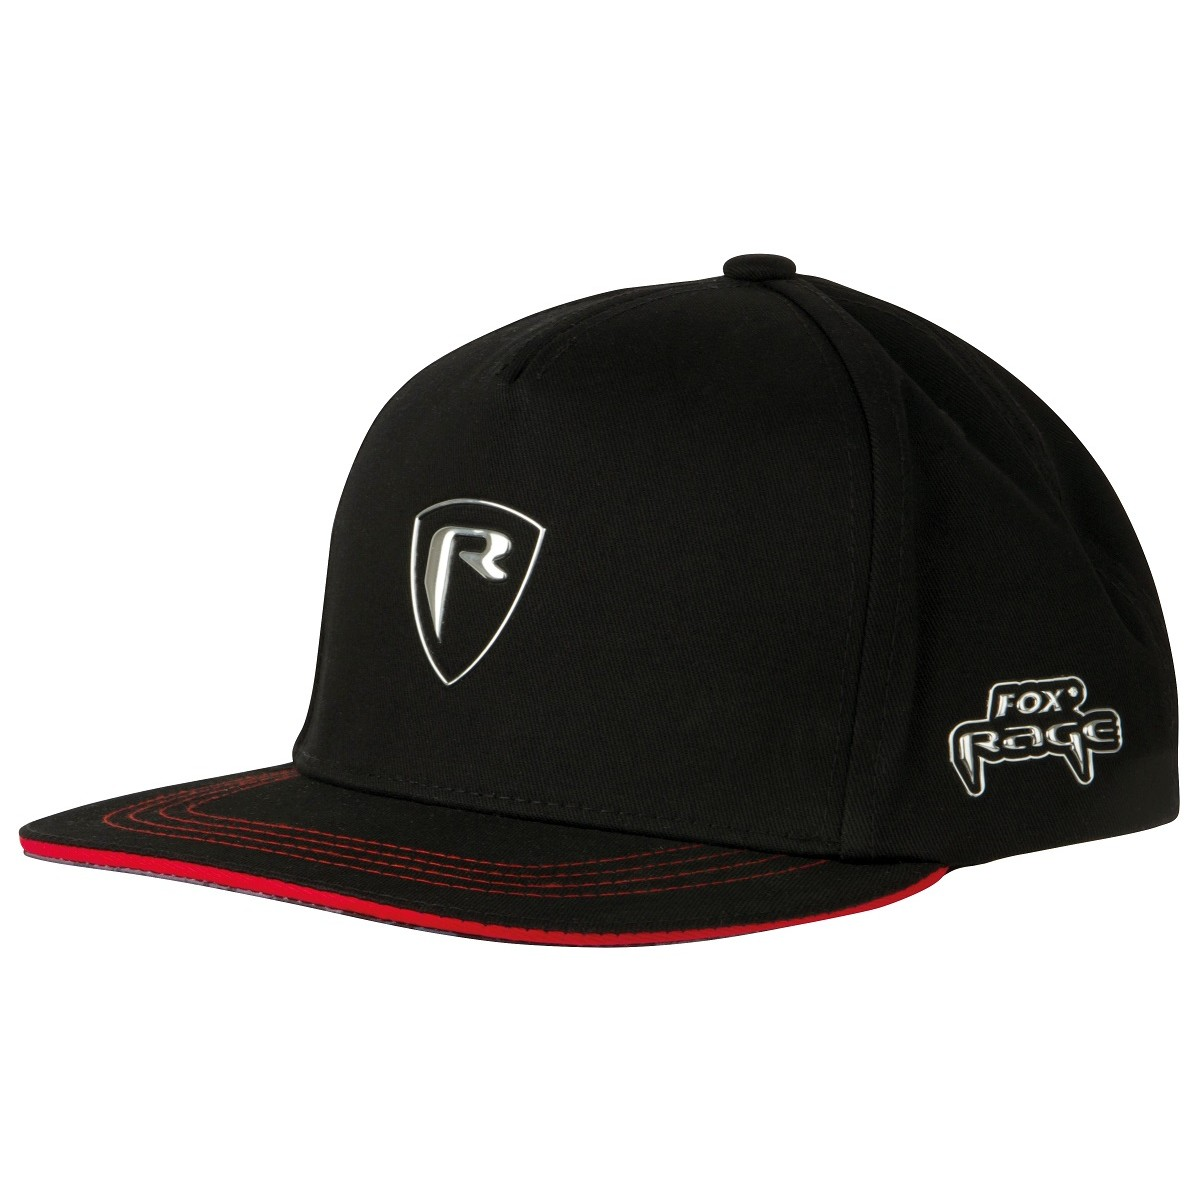 Шапка с козирка Fox Rage Shield Flat Peak Baseball Cap